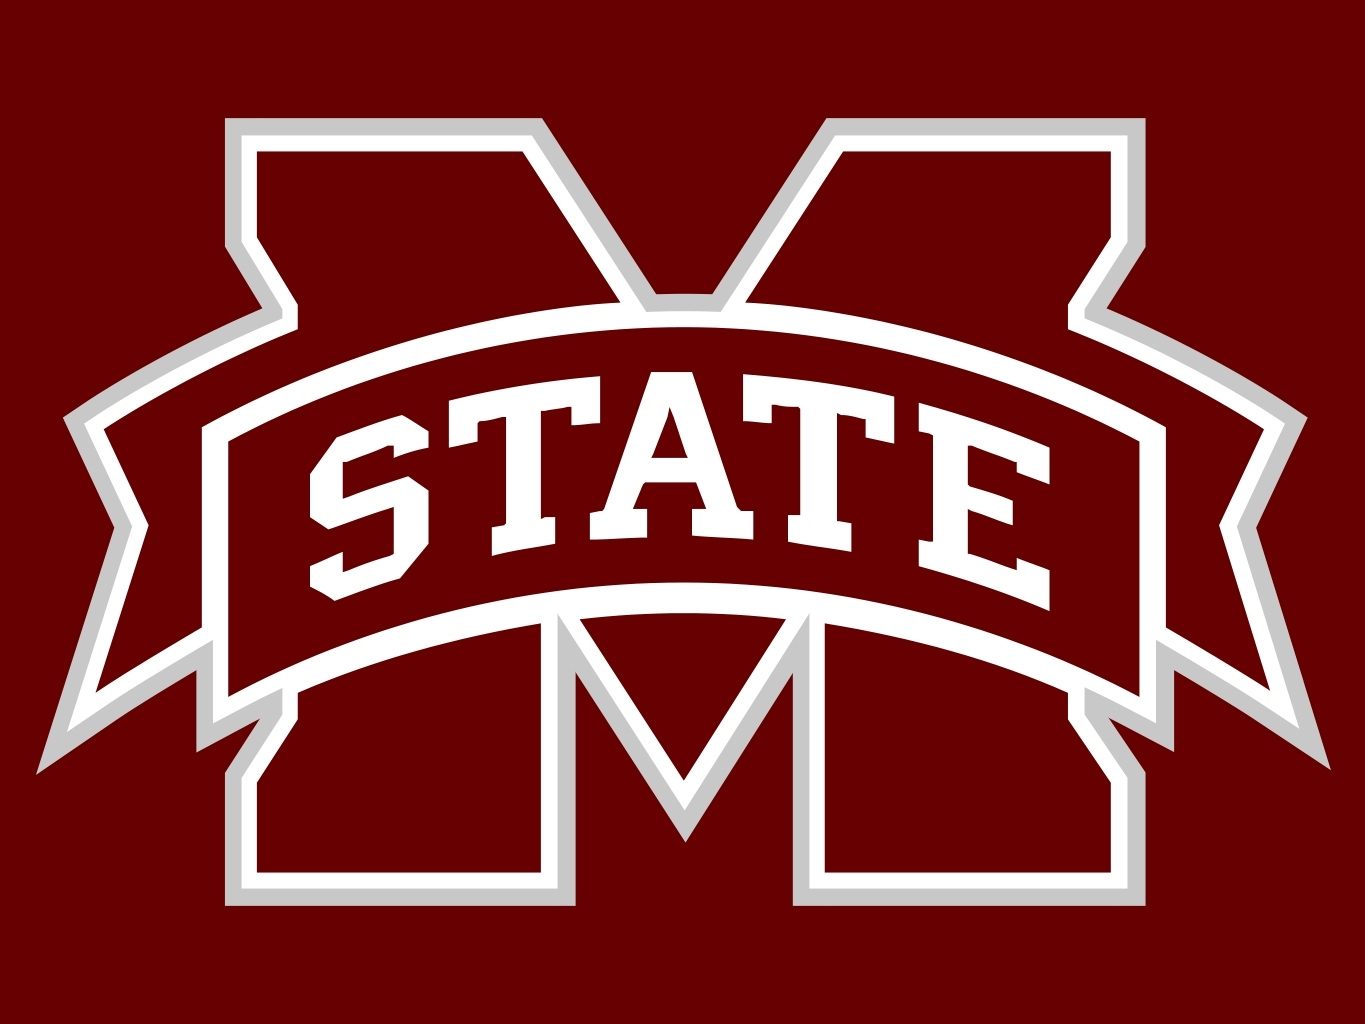 Mississippi state university logo clipart clip library Mississippi State University | ScoutForce Athlete clip library